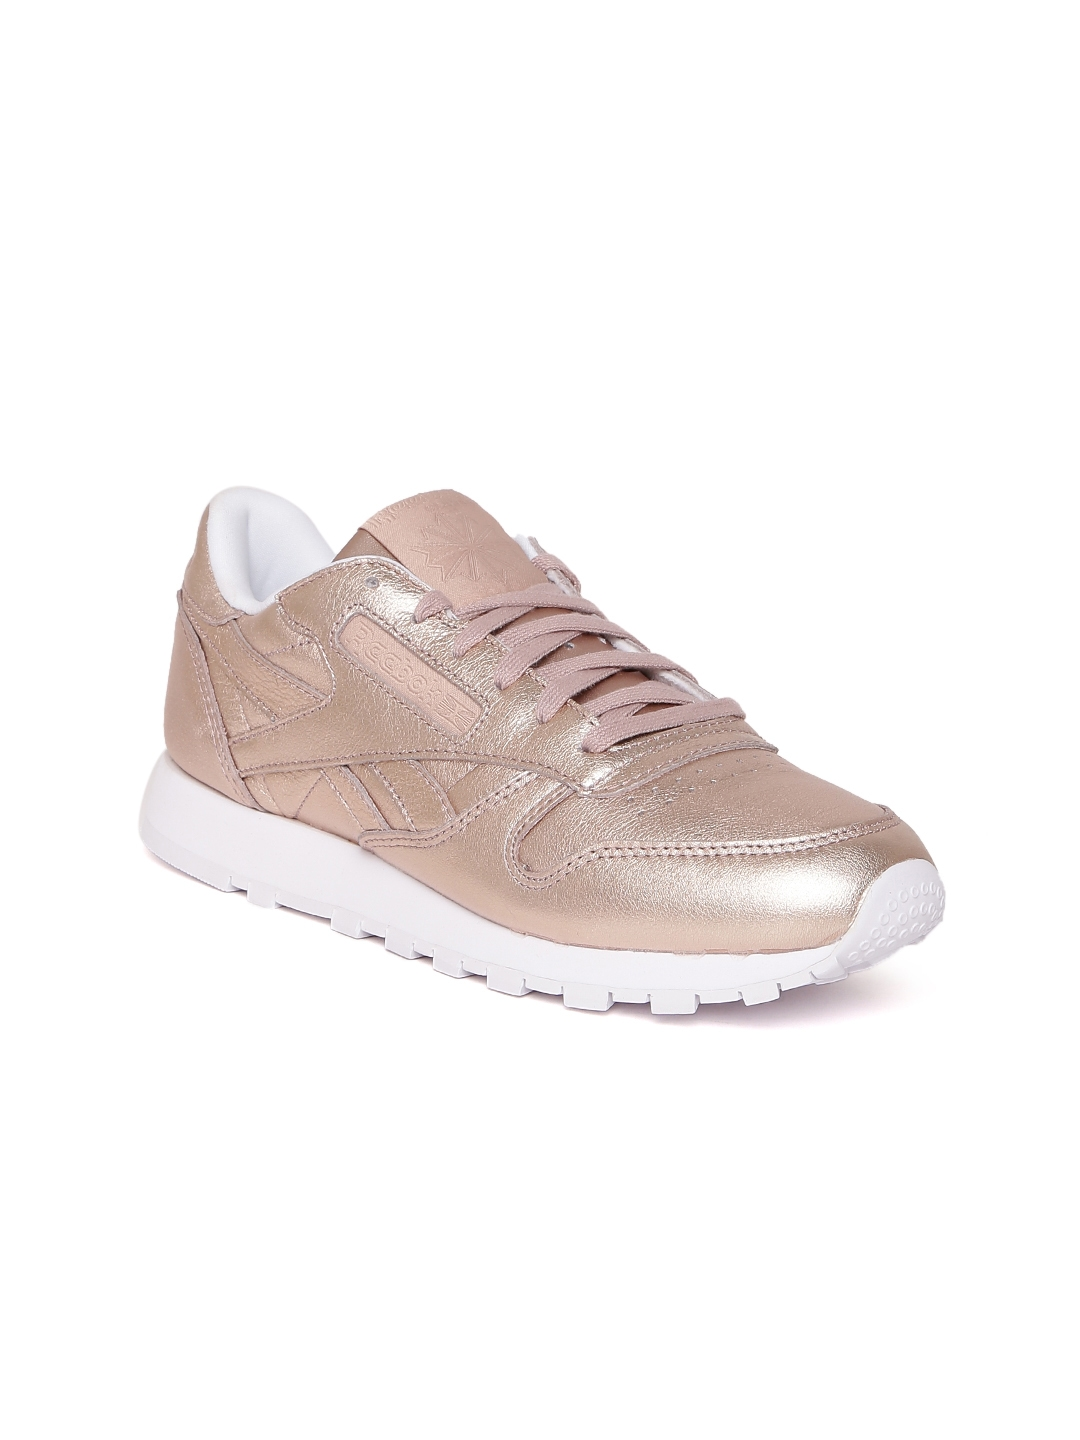 Reebok Classic Women Rose Gold-Toned CL Melted Metal Leather Sneakers 890db3dd6